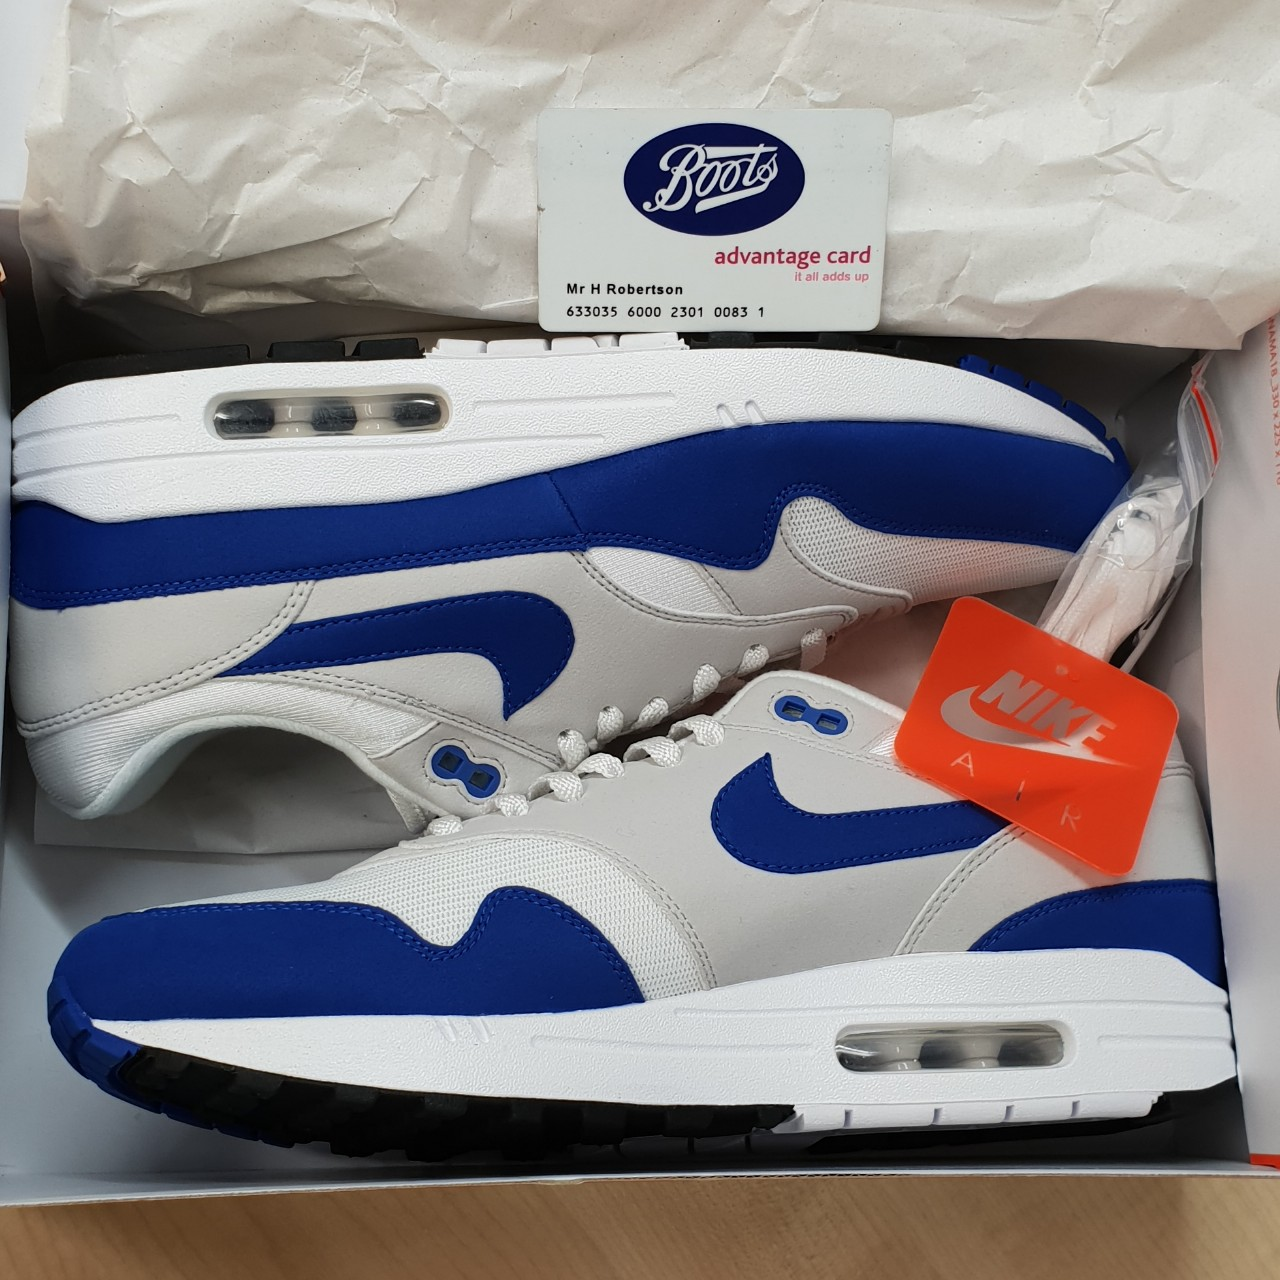 AIR MAX 1 ANNIVERSARY, ROYAL. shoes are DS but hand